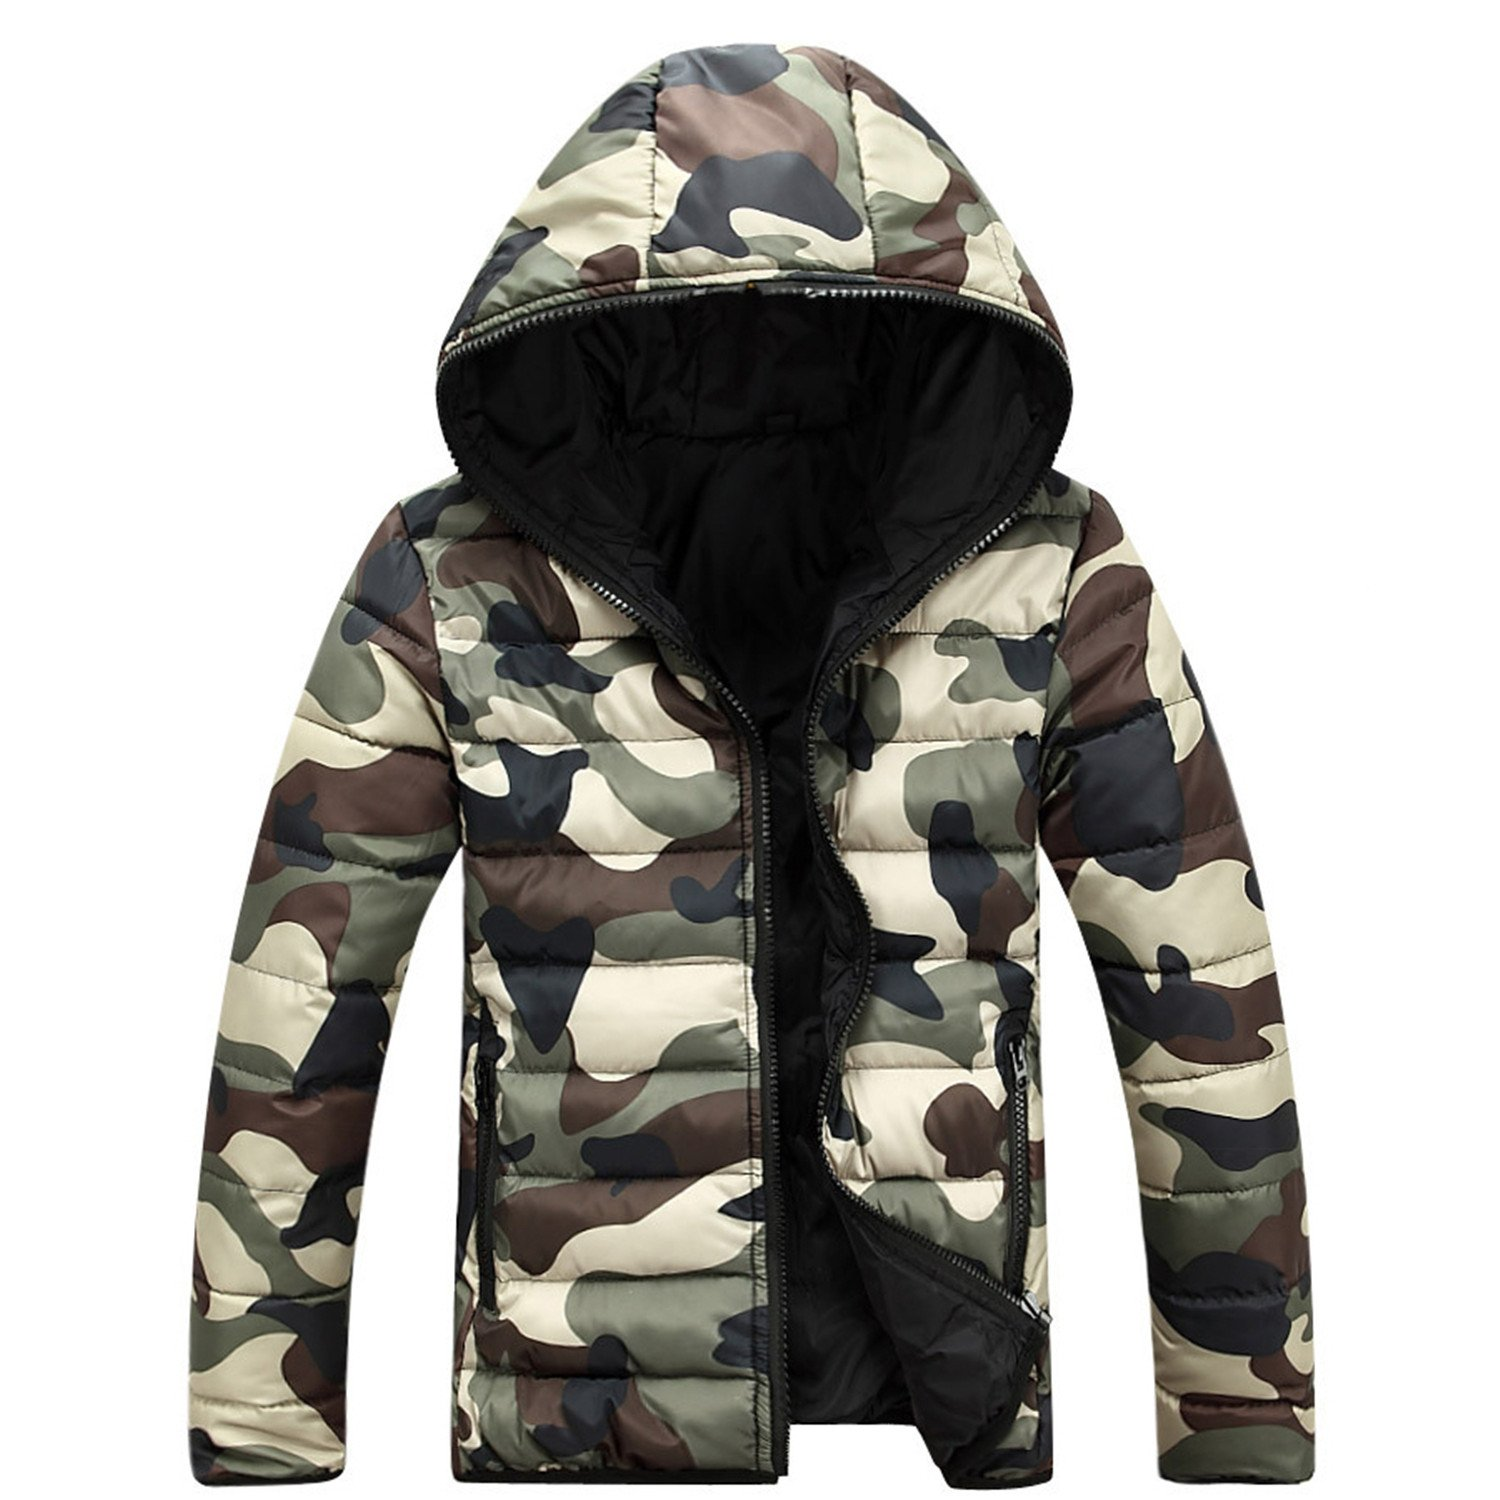 Amazon.com: Aarring Winter Jacket Men Camouflage Soft Shell ...